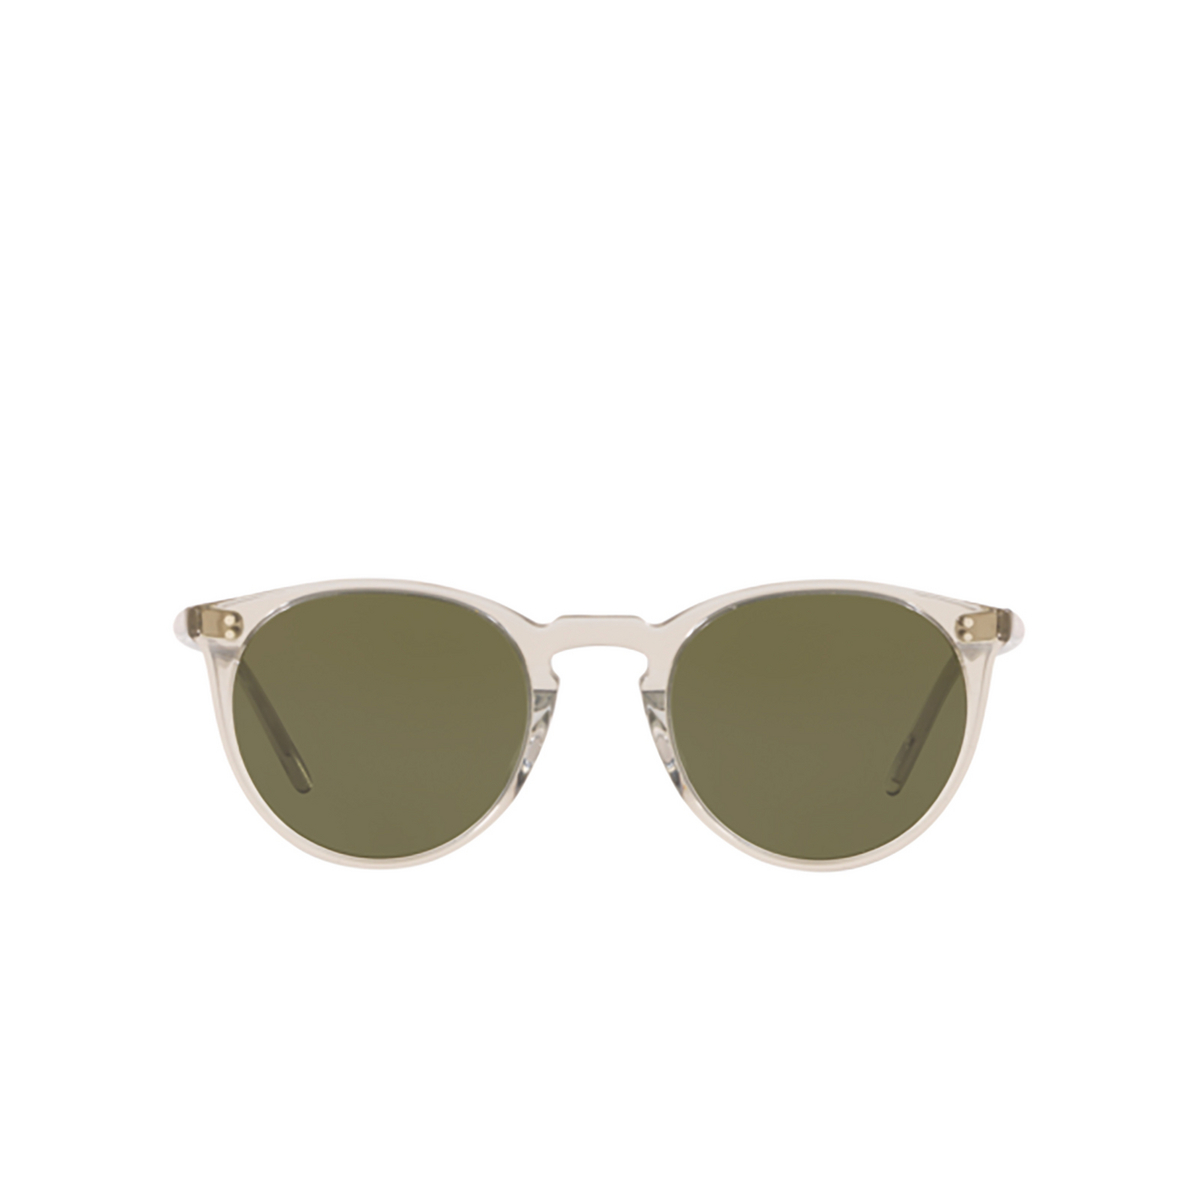 Oliver Peoples® Round Sunglasses: O'malley Sun OV5183S color Black Diamond 166952 - front view.